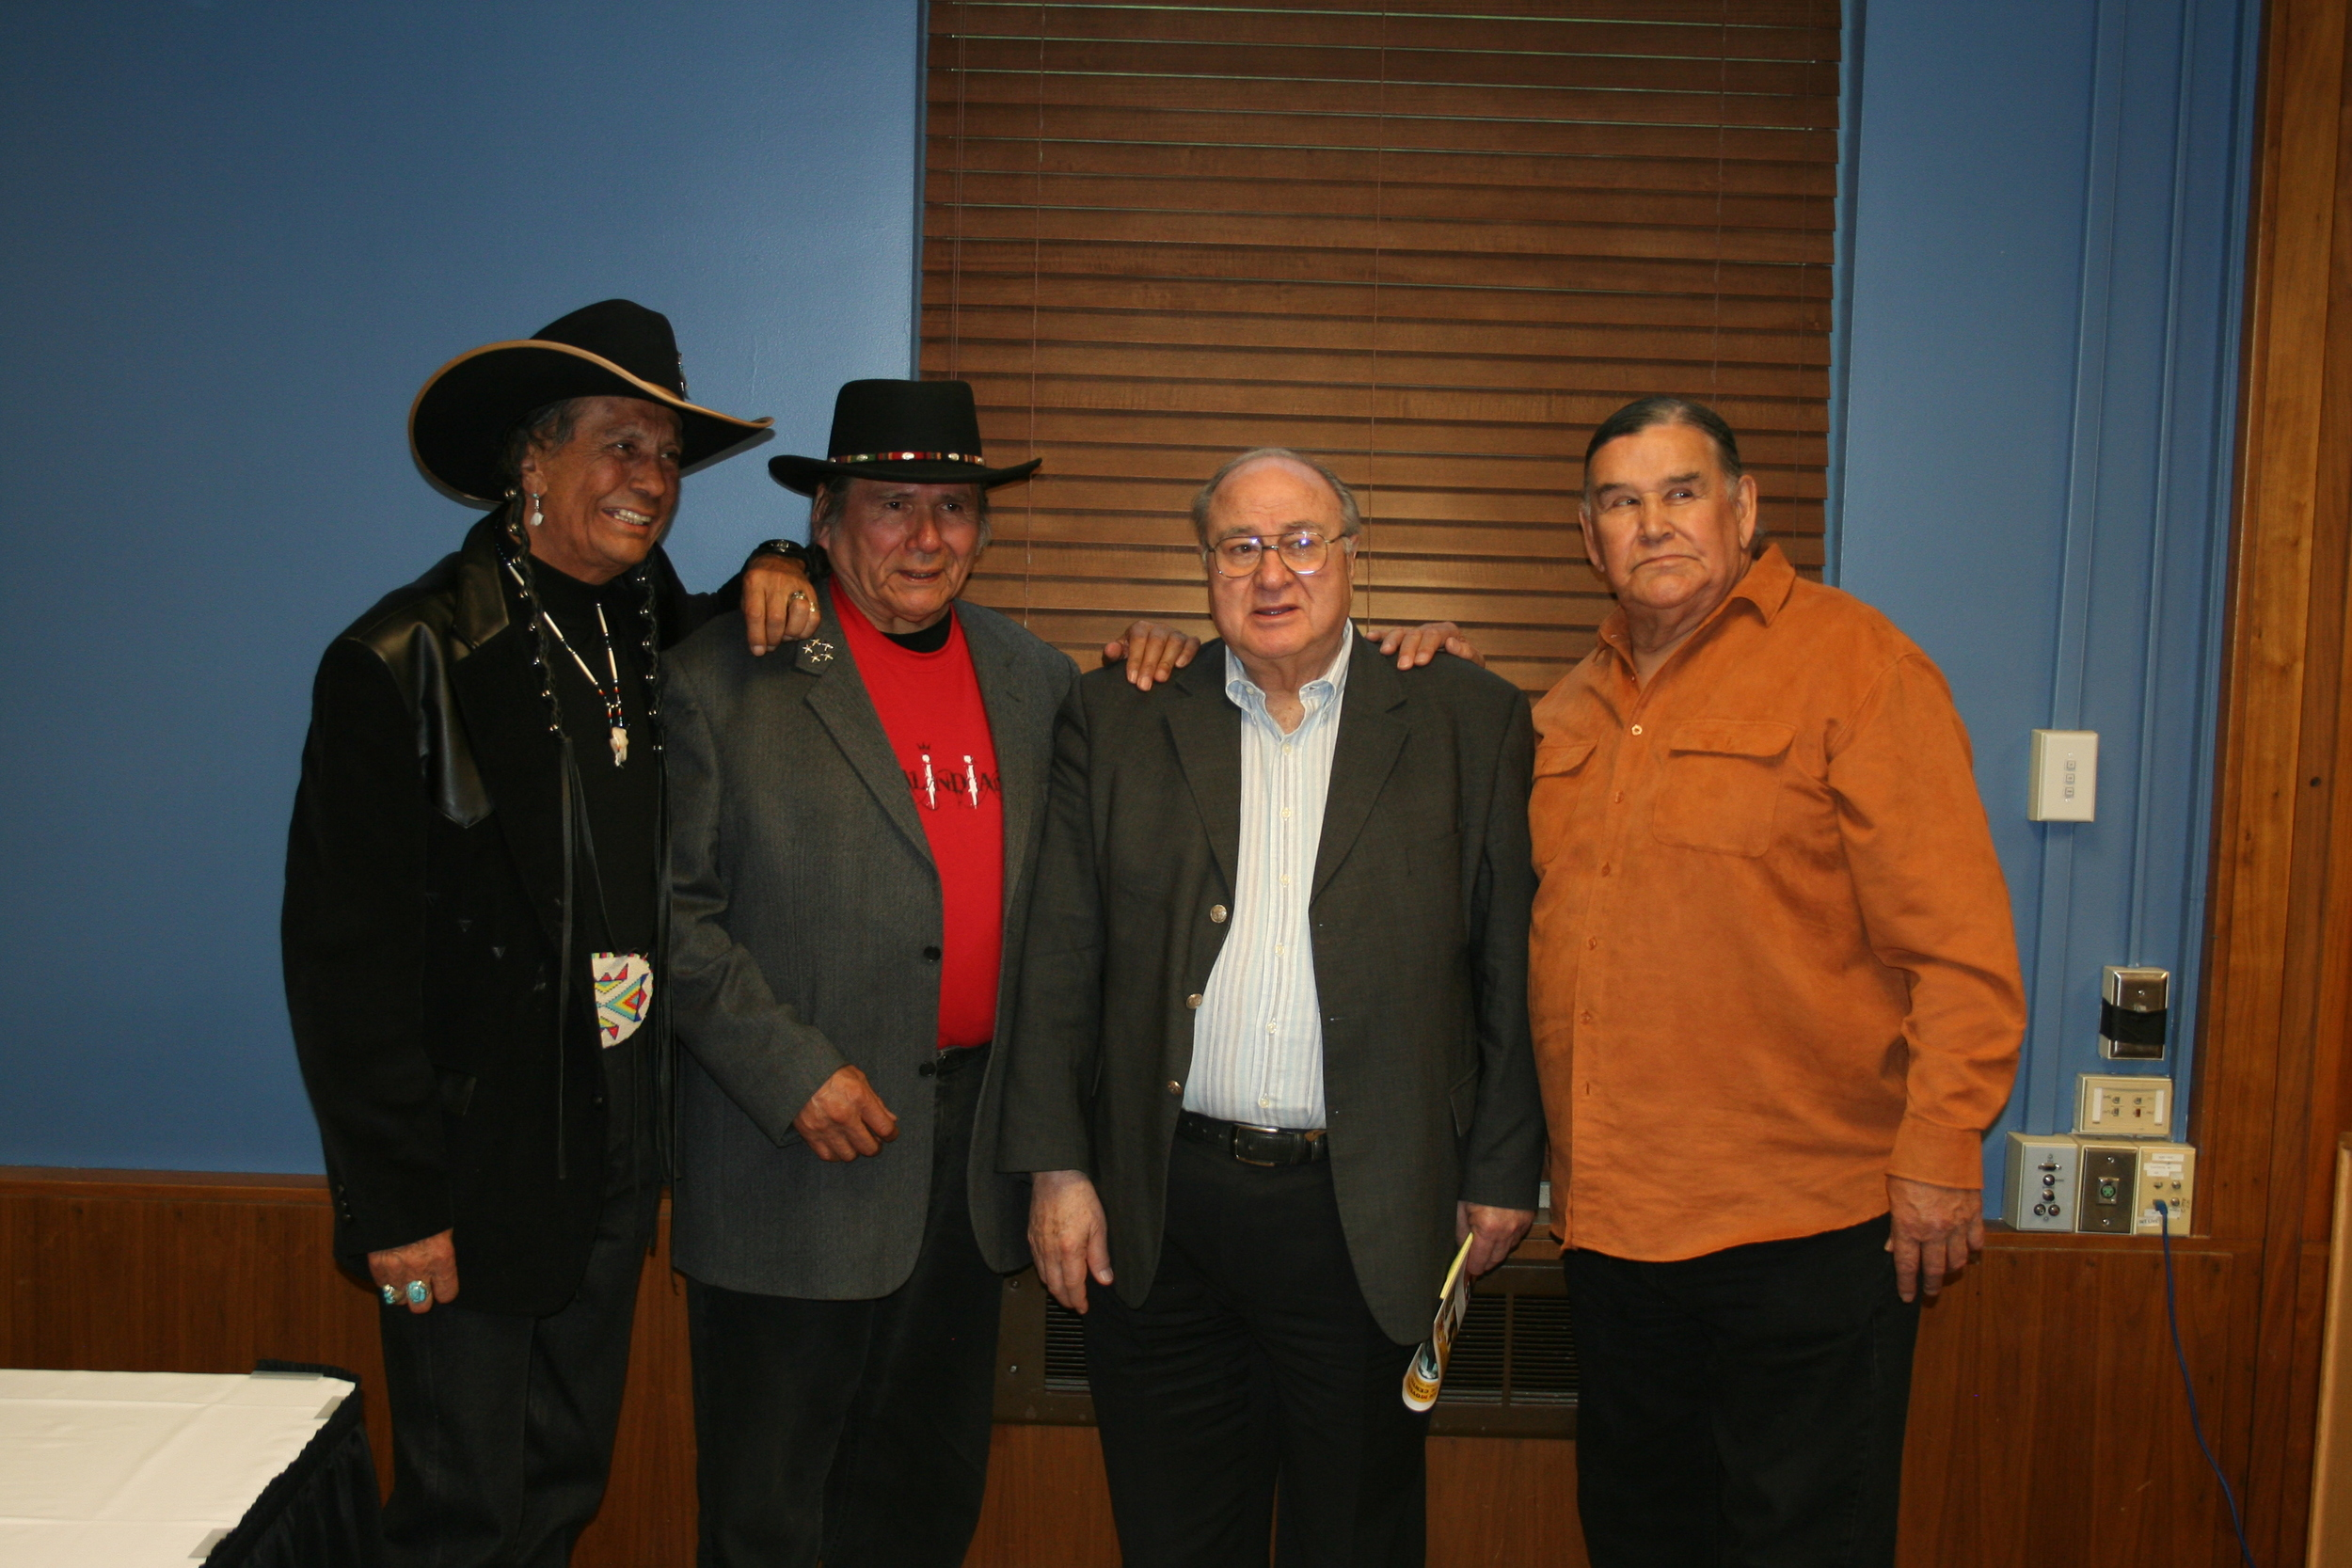 At the final session of the Dakota Conference, left to right: Russel Means, Dennis Banks, Senator James Abourezk, and Clyde Bellecourt.